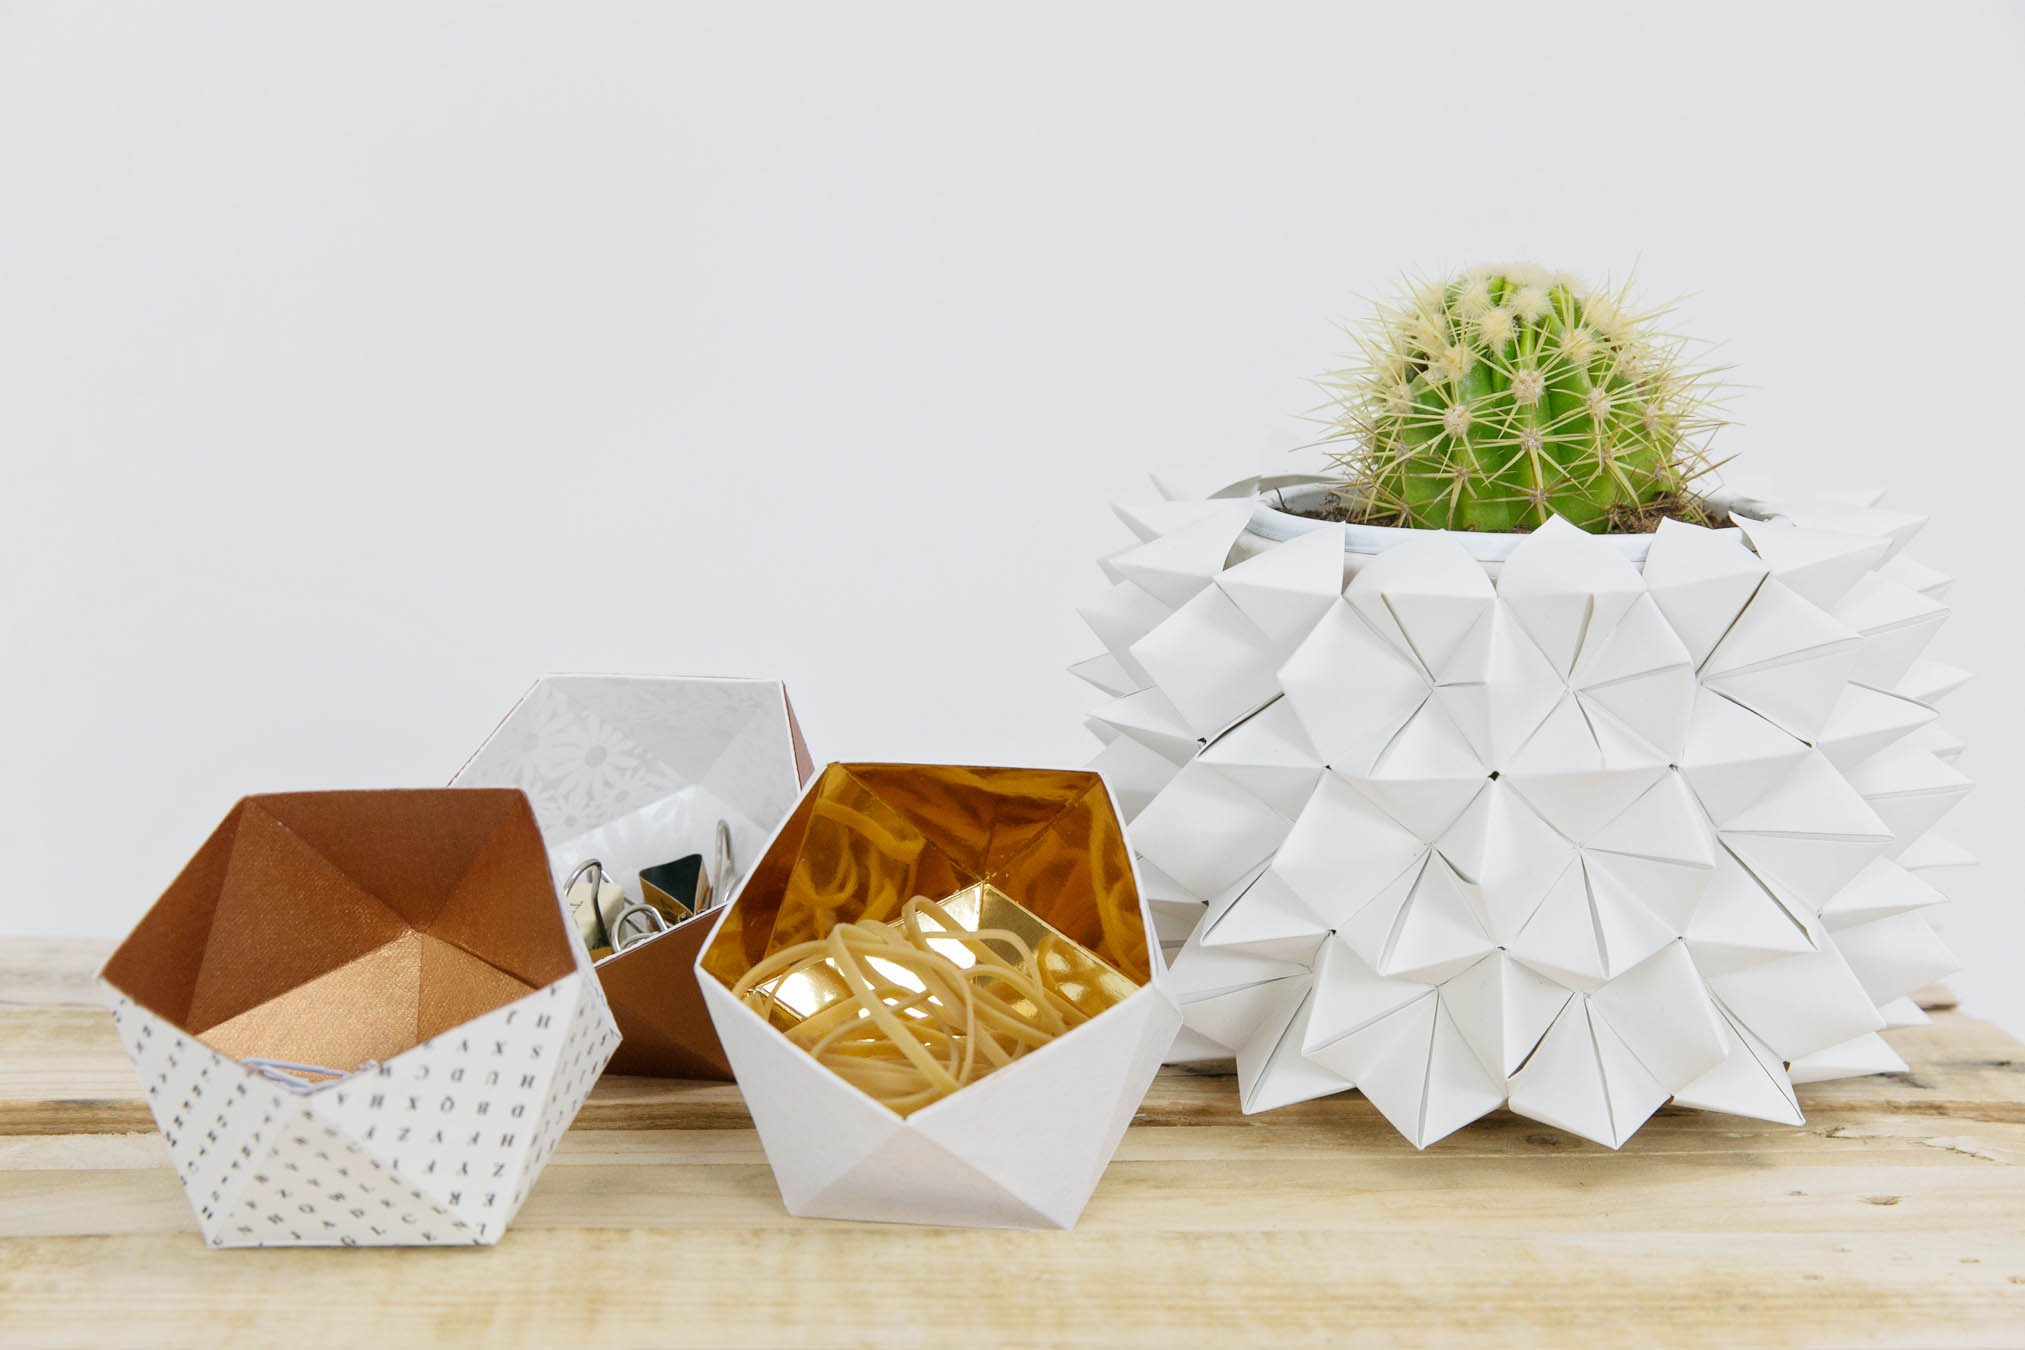 DIY Wedding Decor Ideas - Origami Vase